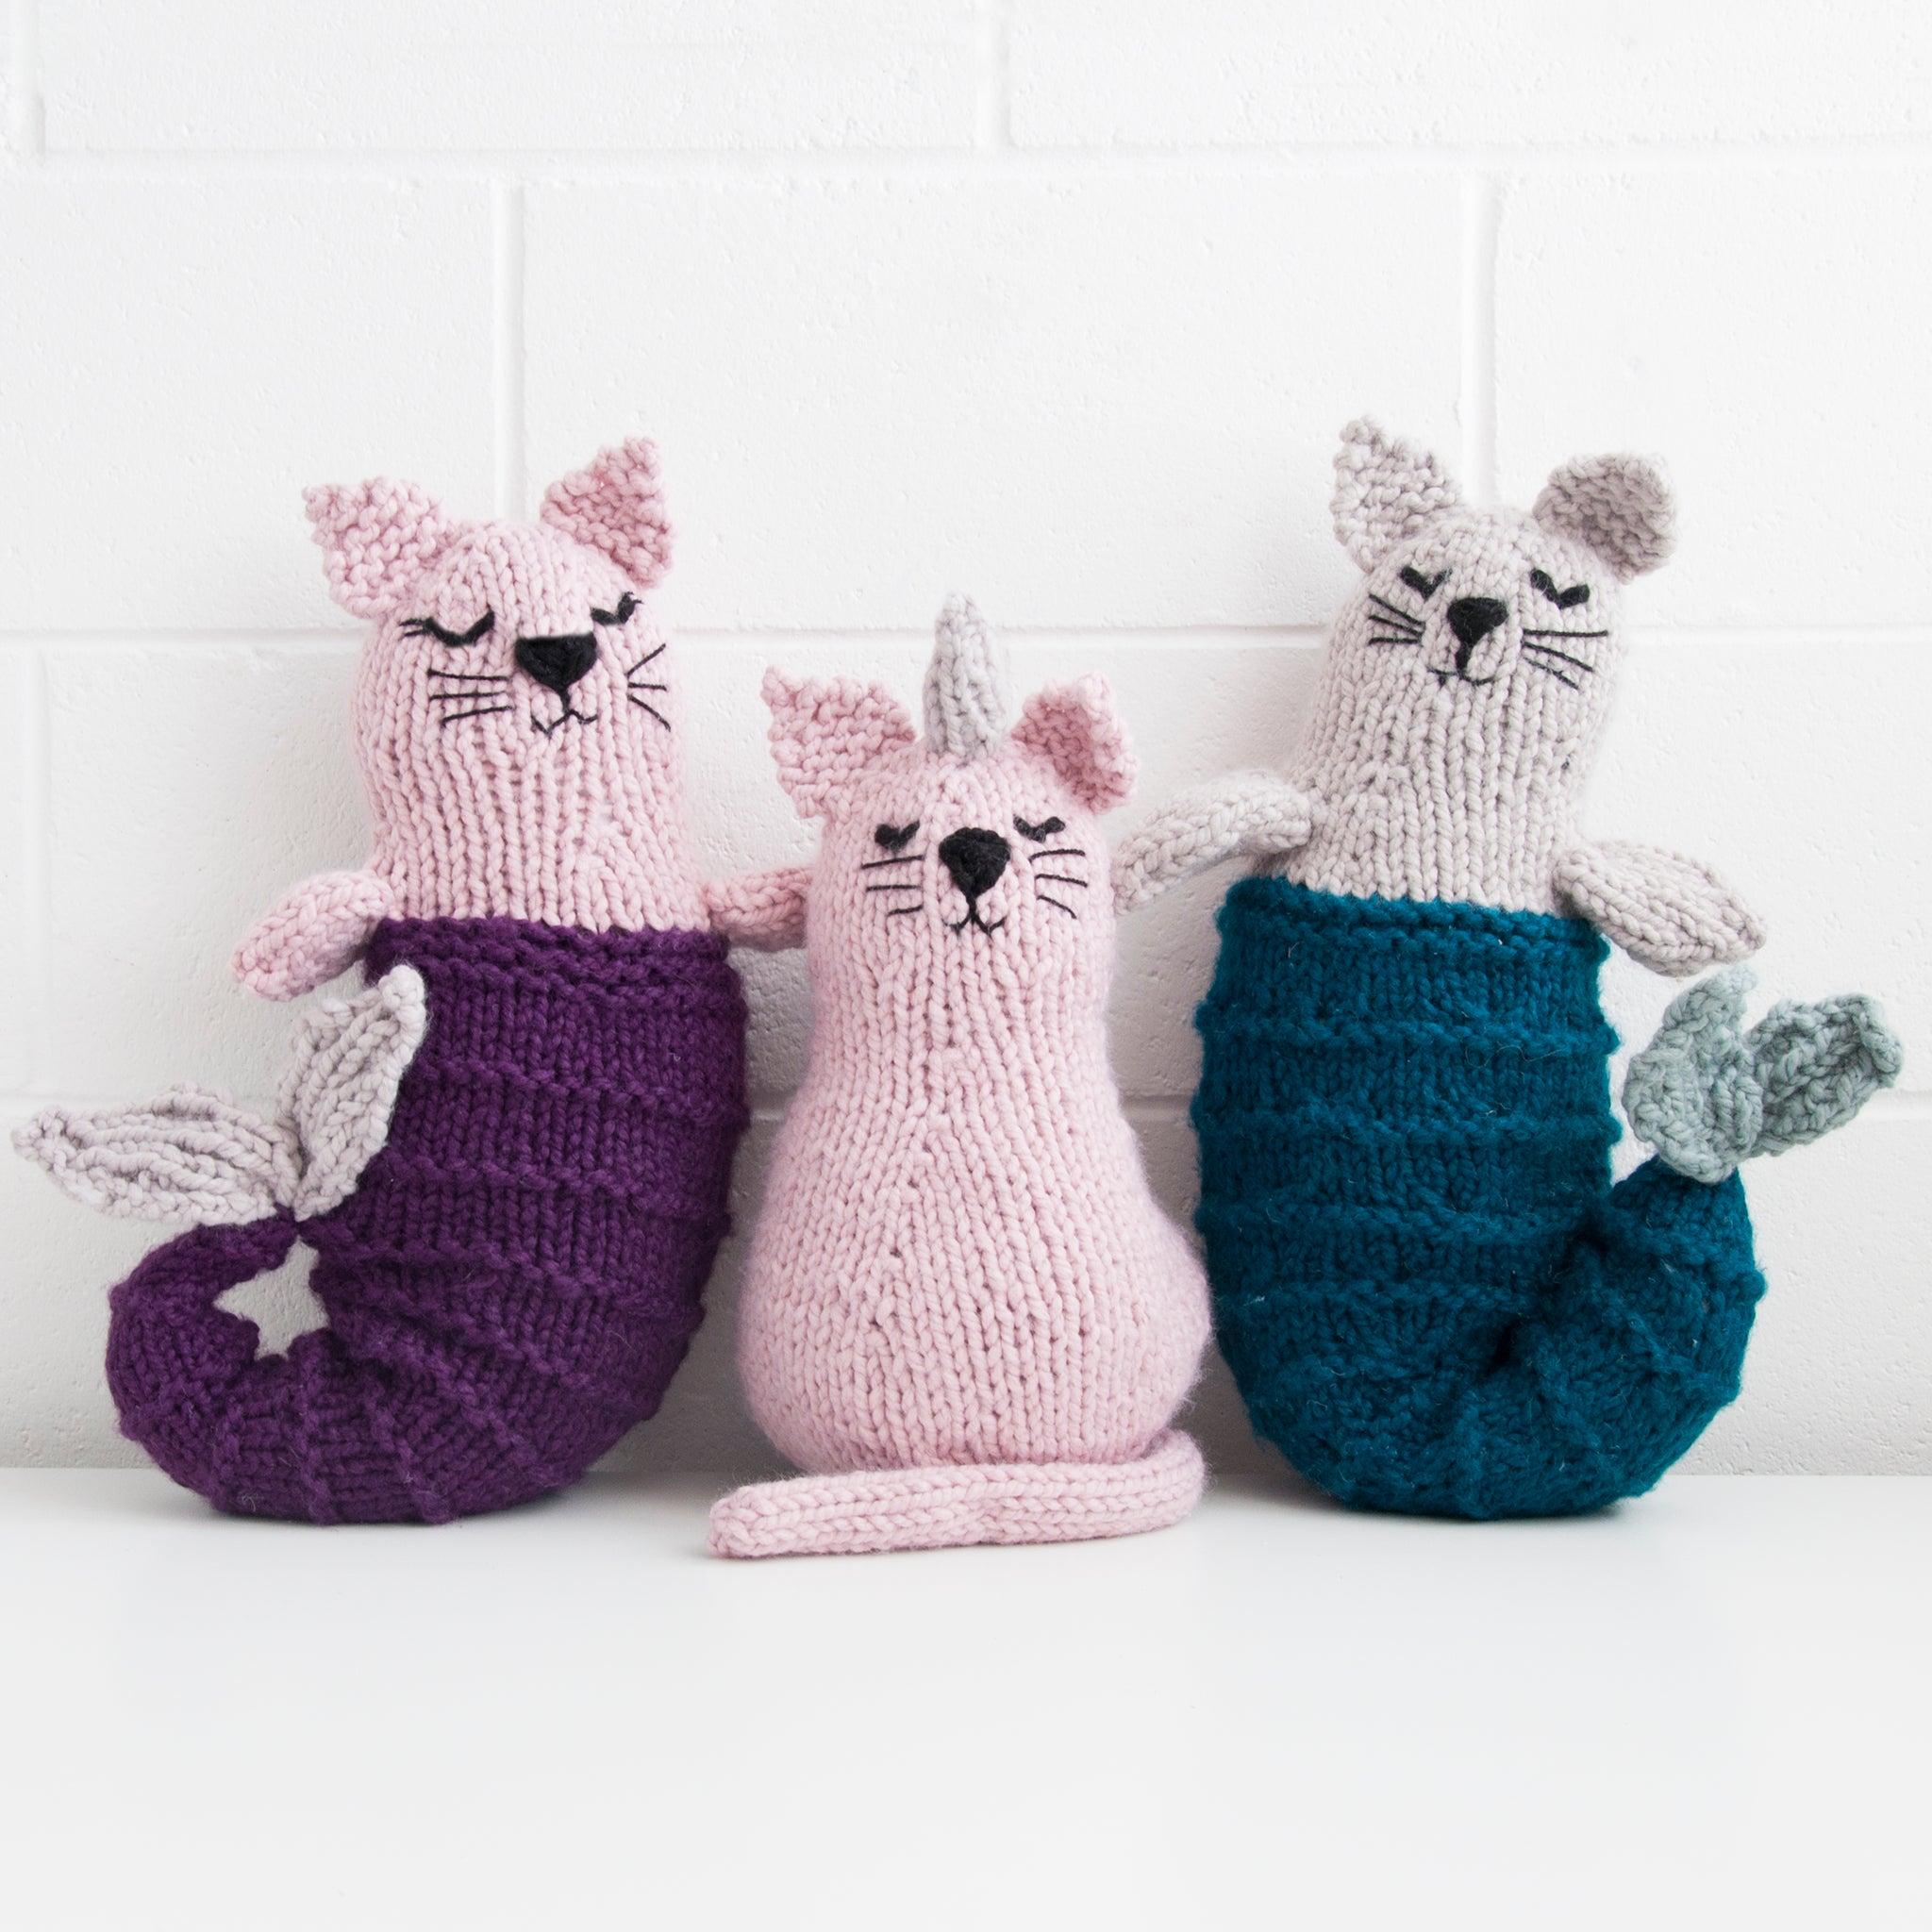 Mermaid Cat Knitting Kit - Mer-cat or Pur-maid